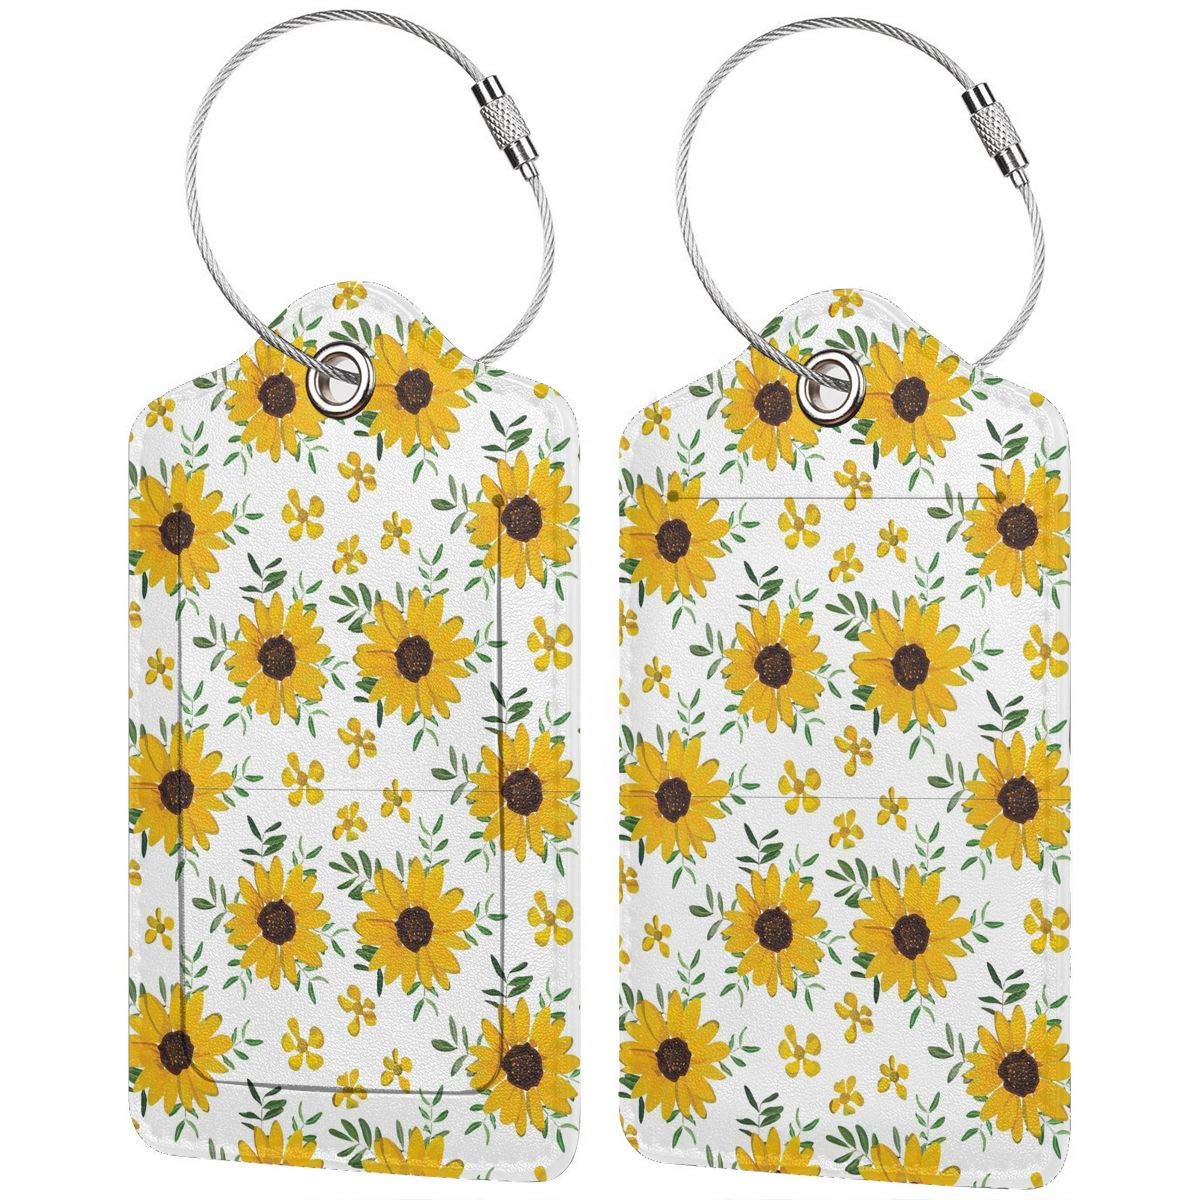 Key Tags for Cruise Ships Honeymoon Gift Leather Luggage Tags Full Privacy Cover and Stainless Steel Loop 1 2 4 Pcs Set Vintage Yellow Sunflower 2.7 x 4.6 Blank Tag